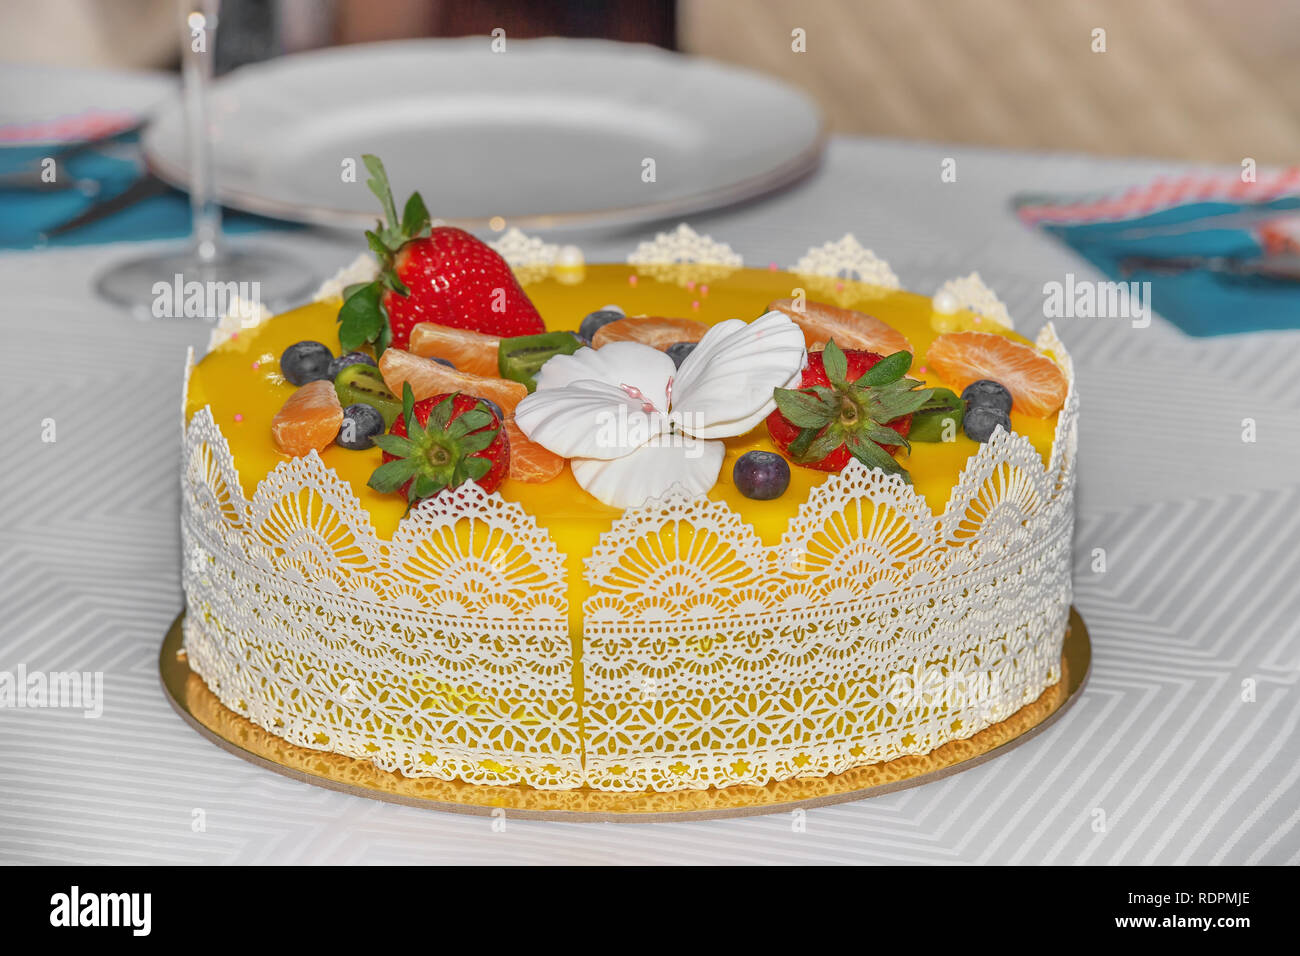 Beautiful delicious yellow cake with fruit and caramel decorations with a smooth jelly surface. - Stock Image